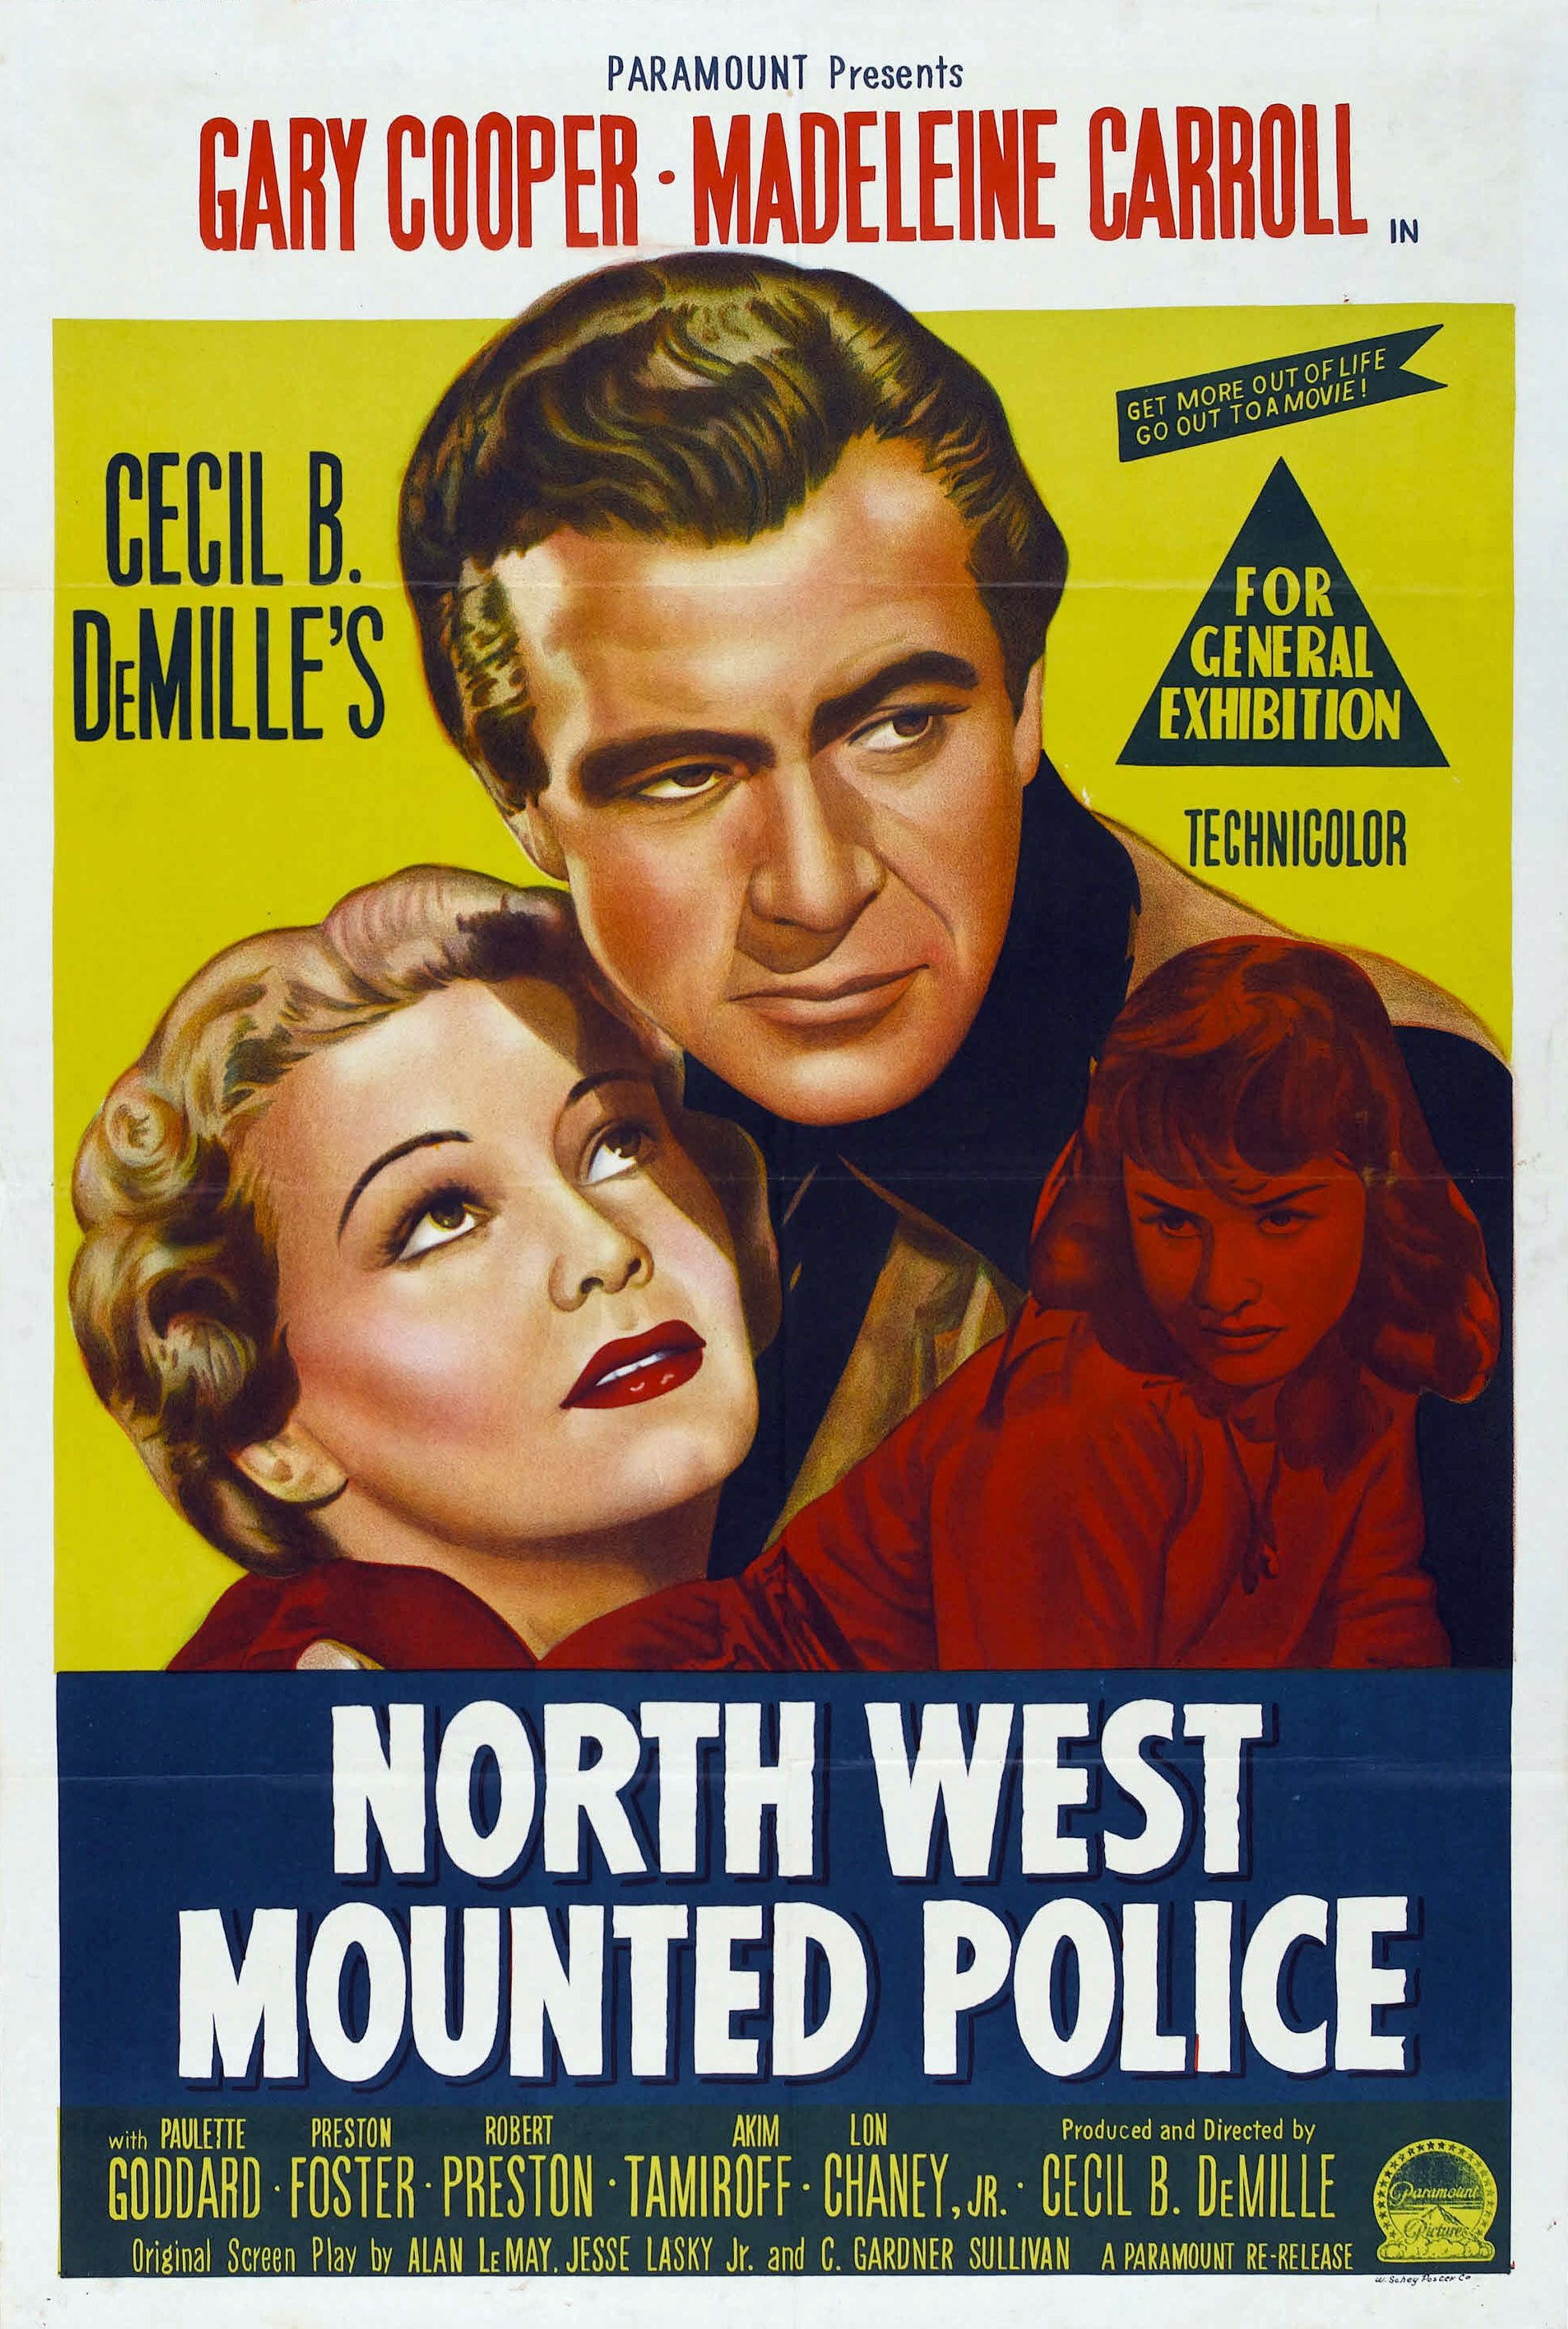 """""""North West Mounted Police"""" directed by Cecil B. DeMille / 2nd grossing film in 1940"""